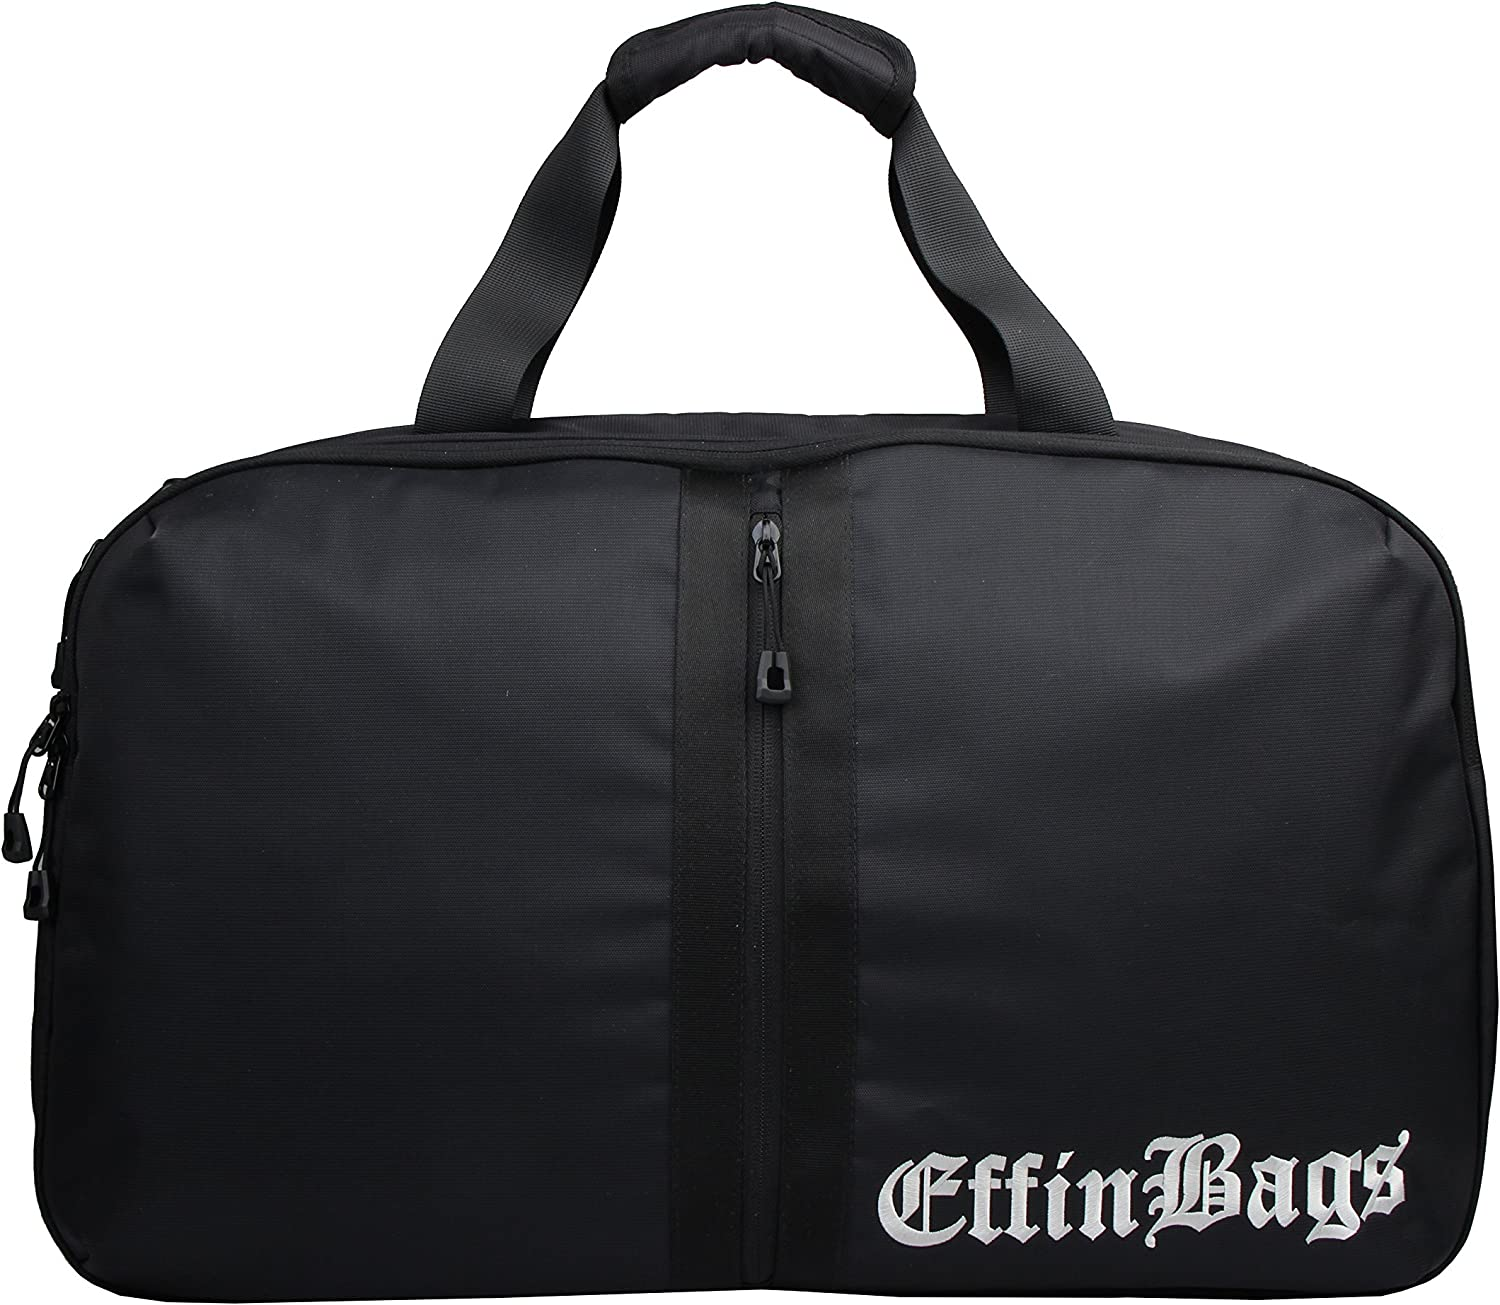 Effin World Tour Traveler Black Duffel Bag